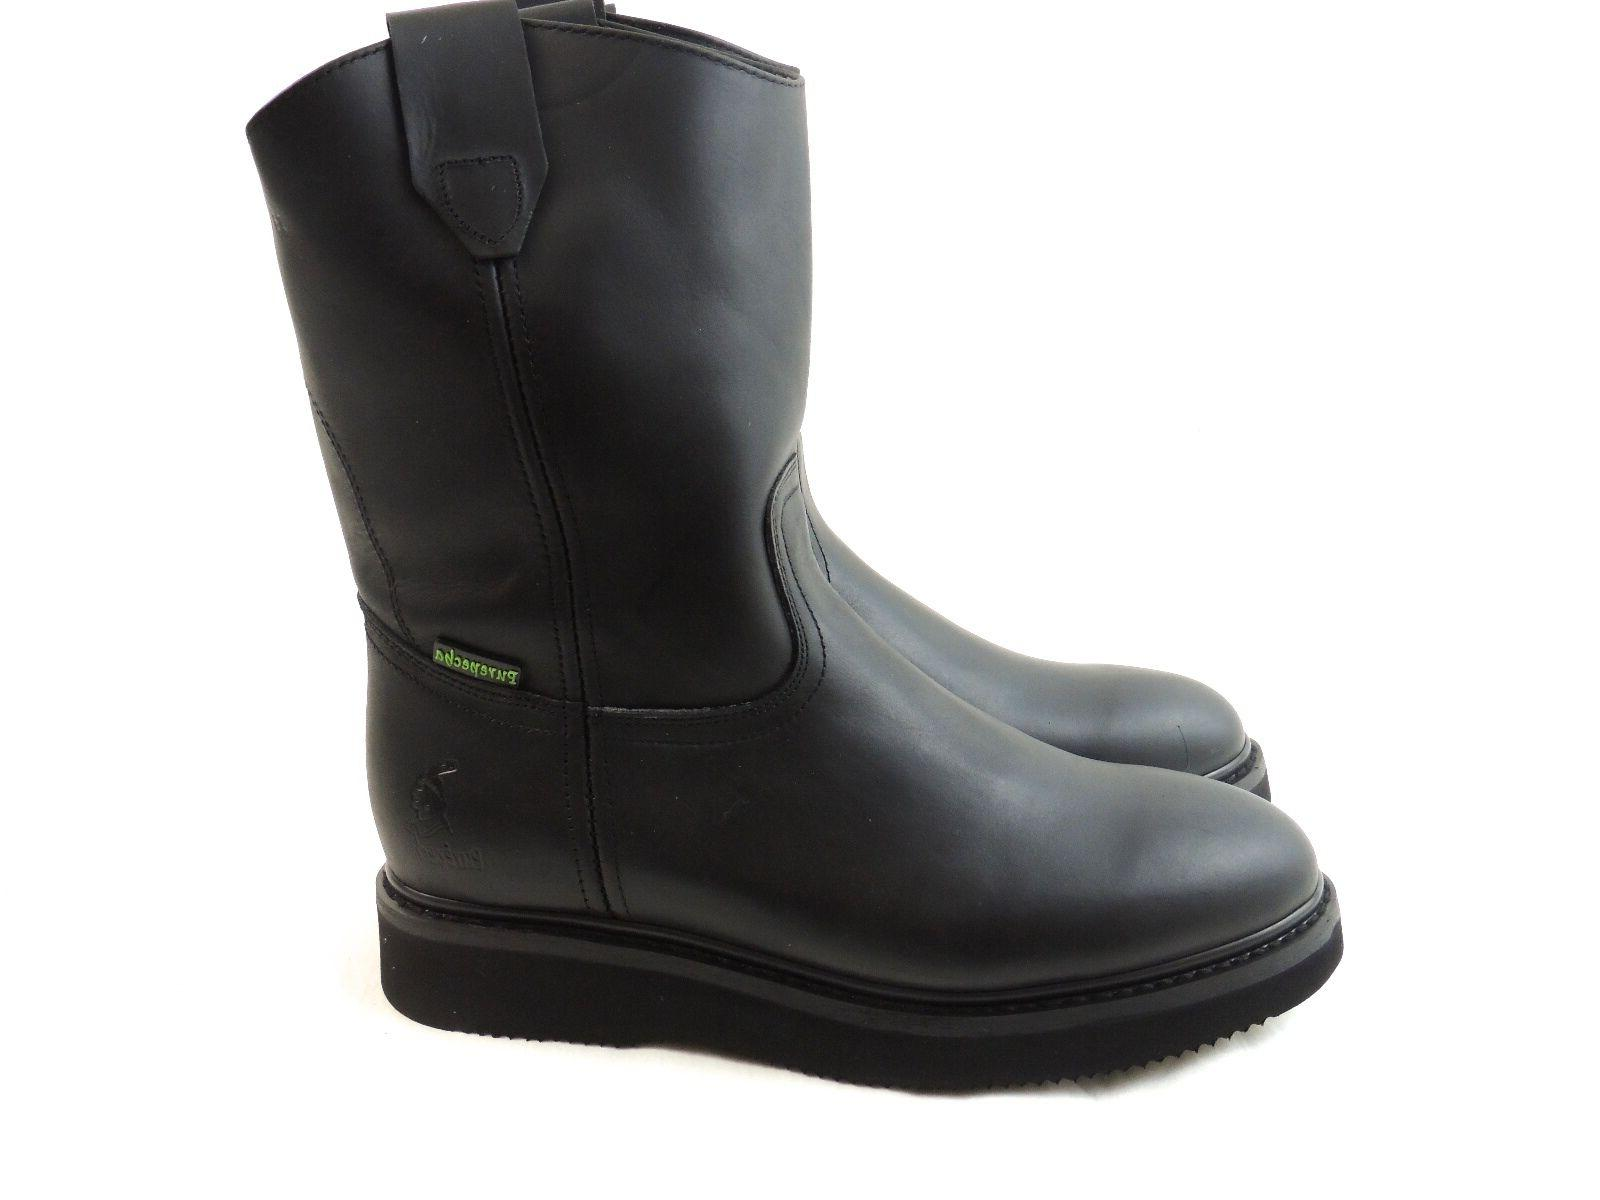 MEN'S WORK BOOTS LEATHER BLACK BOOTS